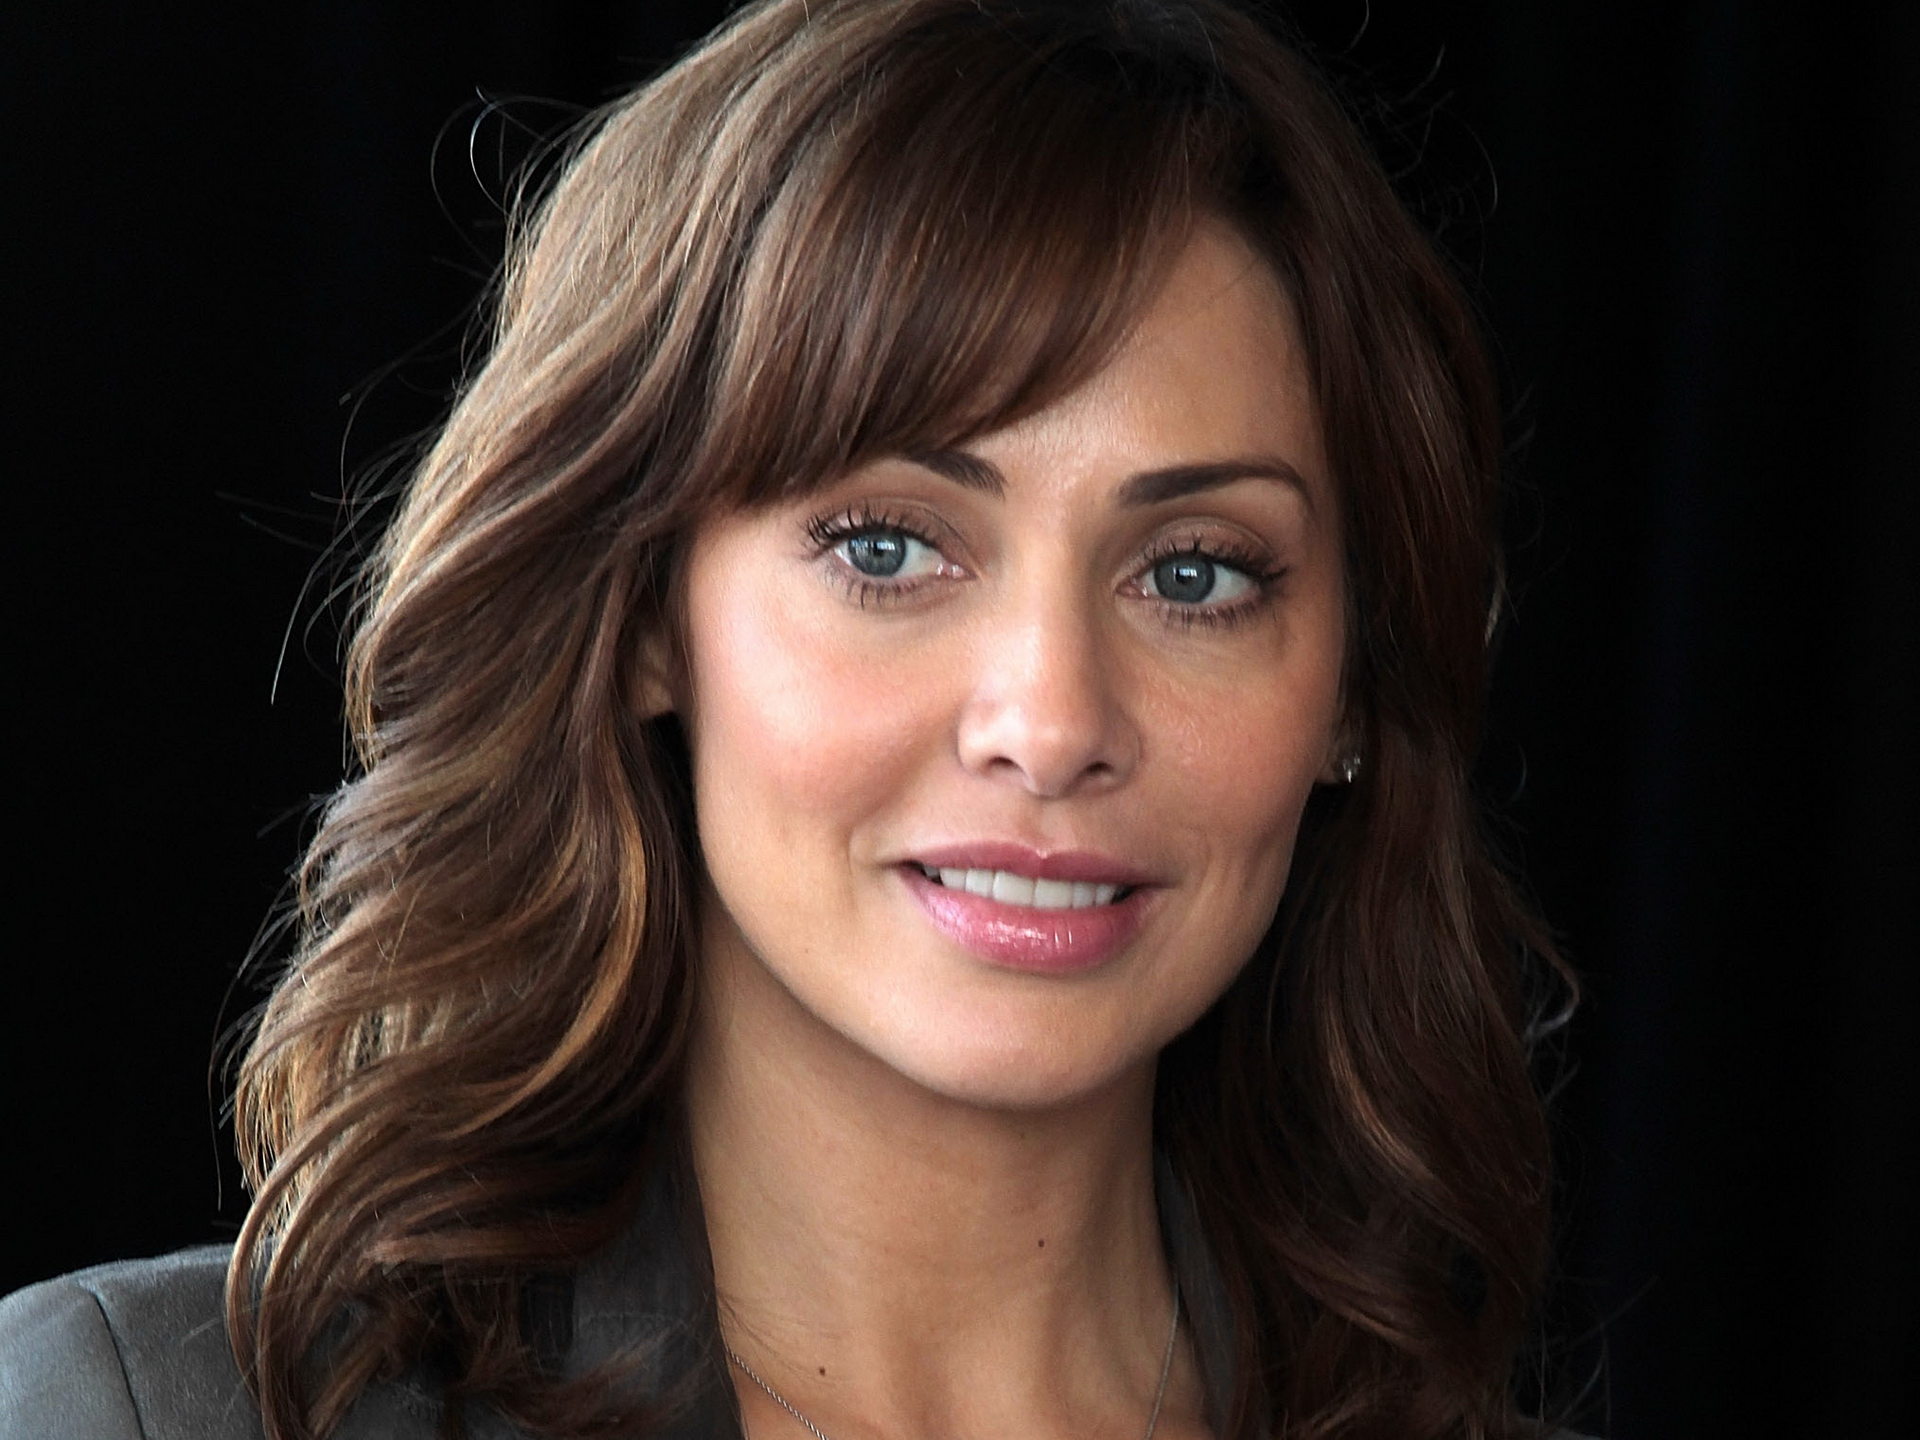 Young Natalie Imbruglia nudes (66 foto and video), Topless, Sideboobs, Feet, cameltoe 2020